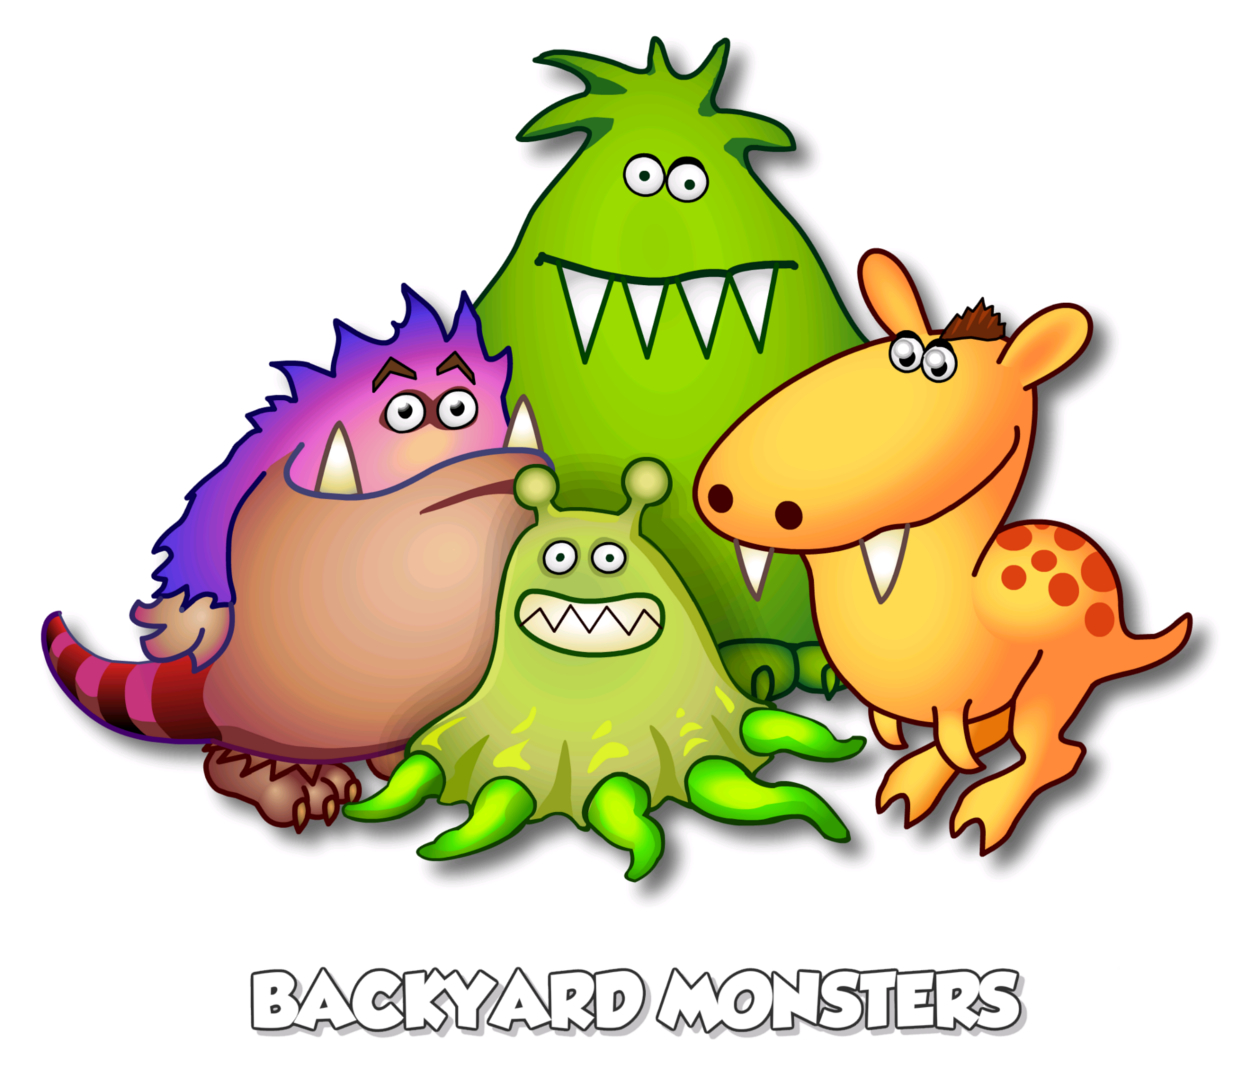 Backyard Monsters Cheat Engine